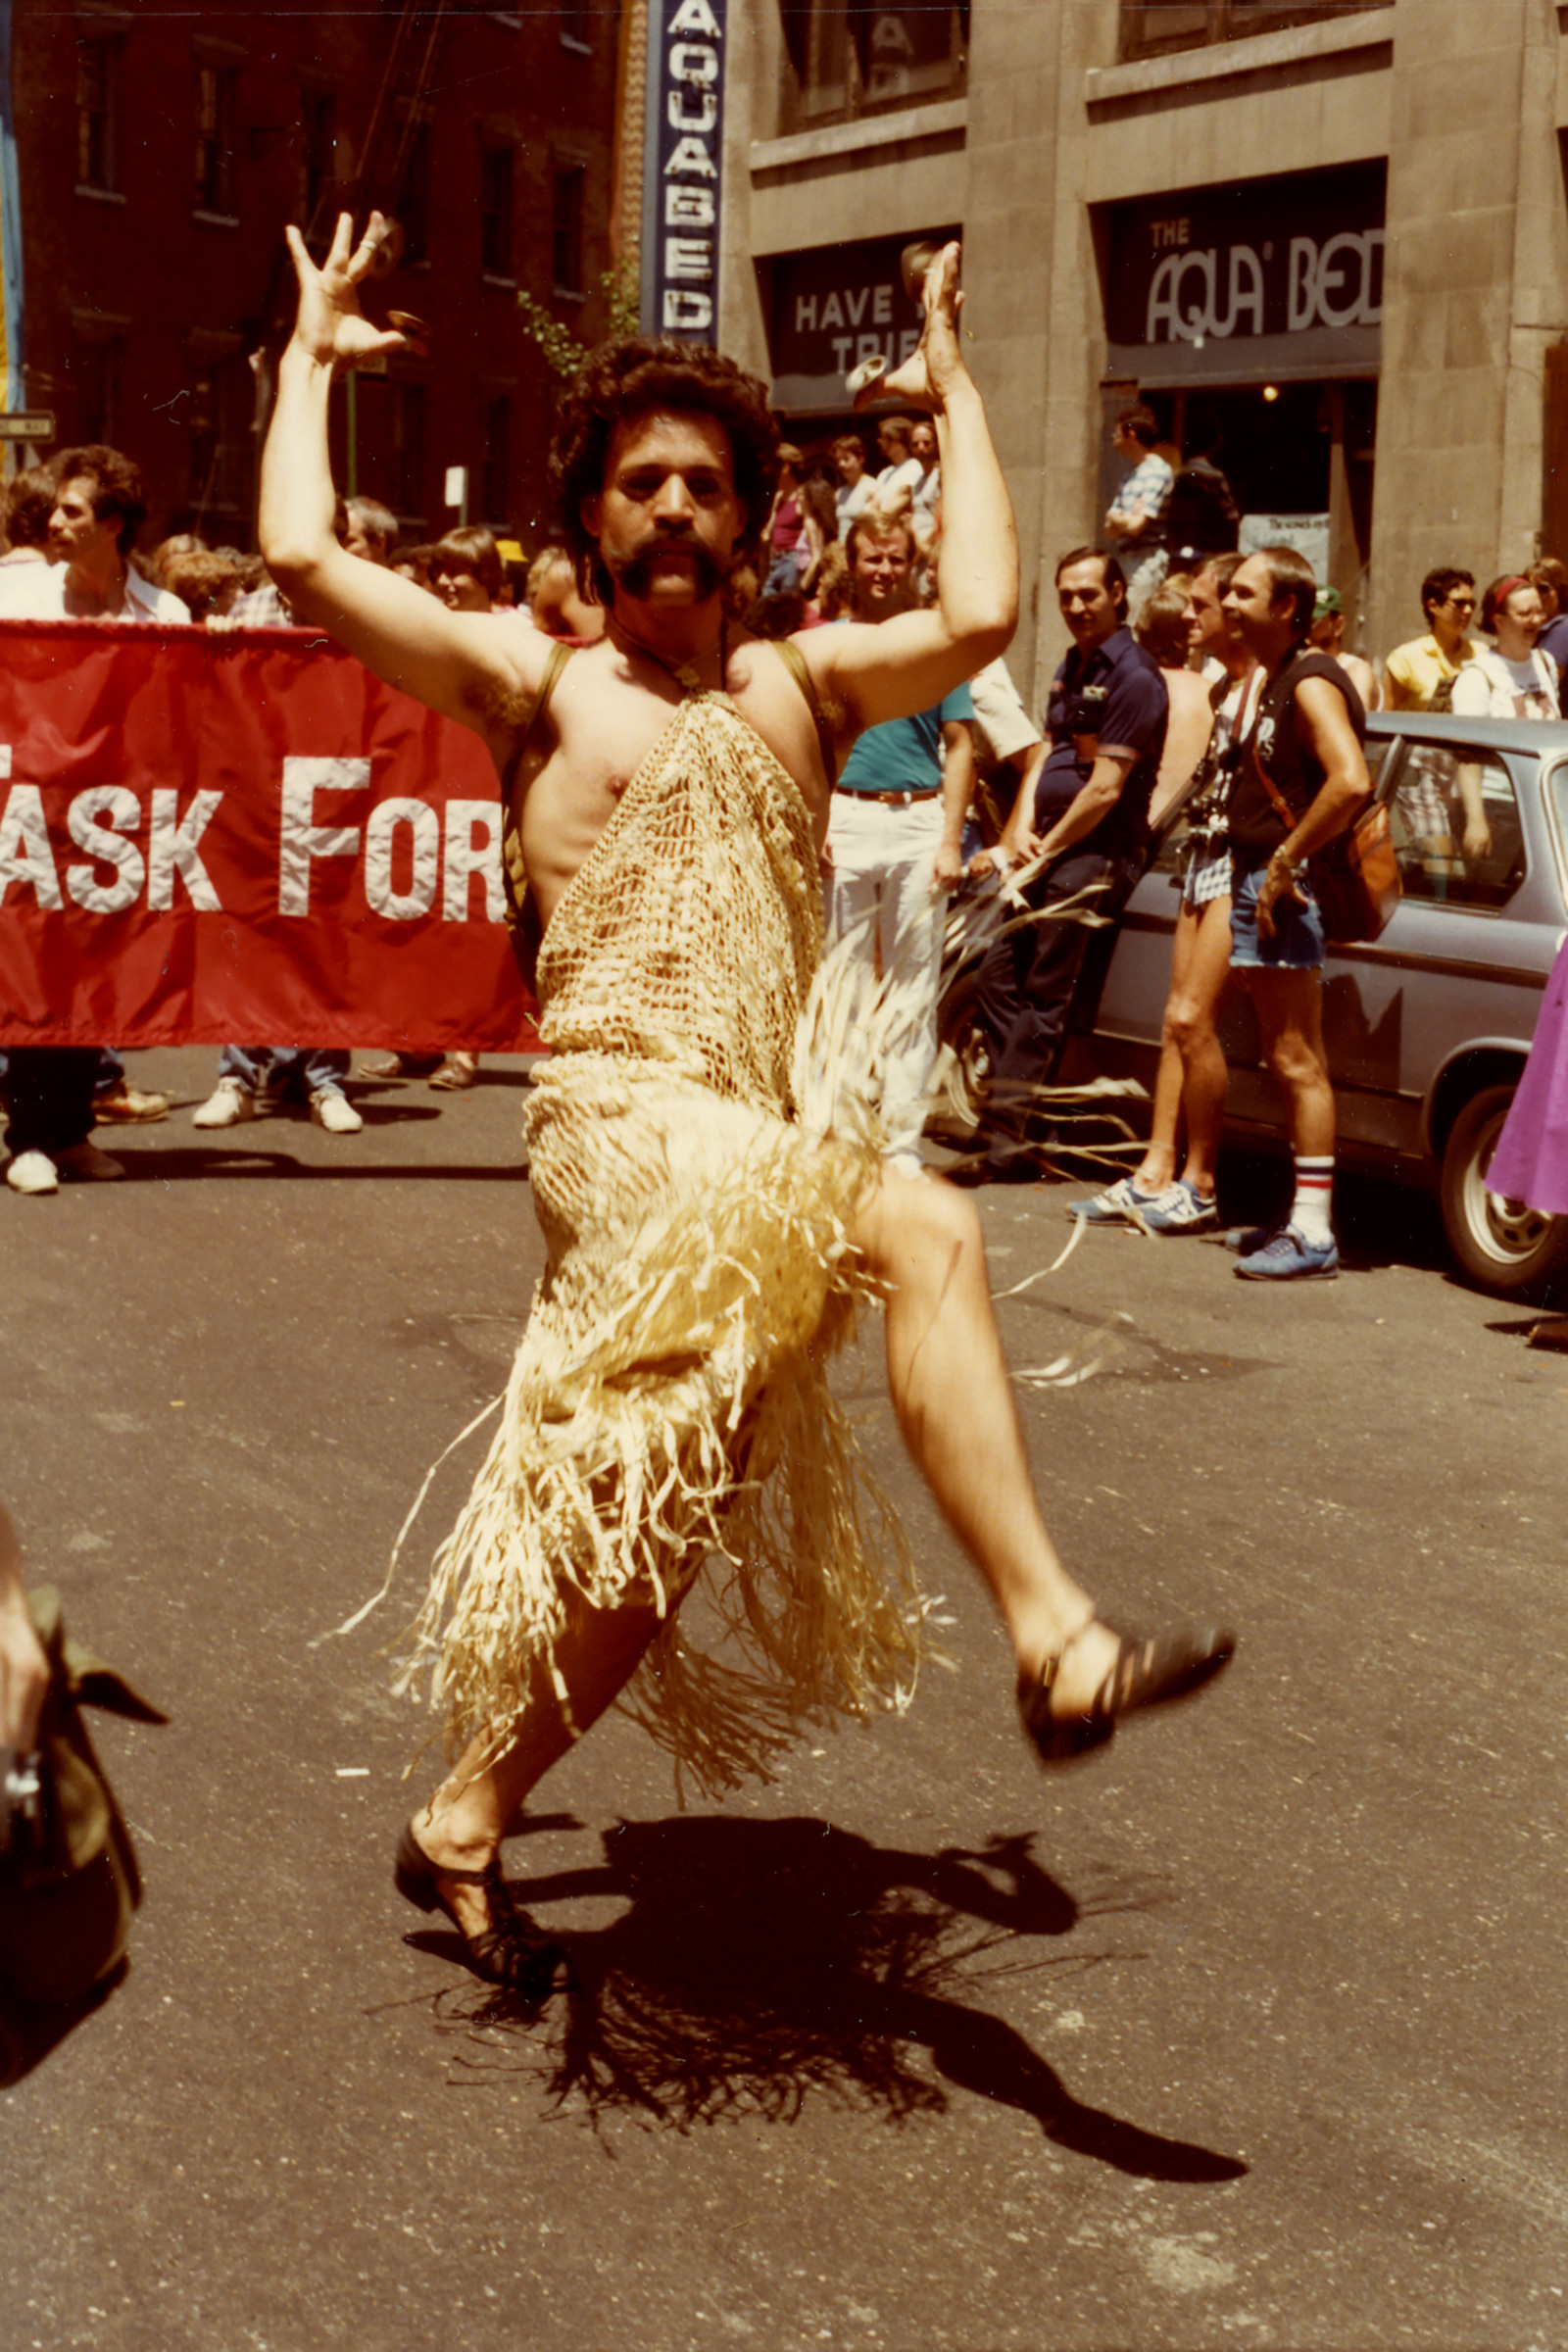 A person in a gold dress marches during the Pride Parade in 1981.